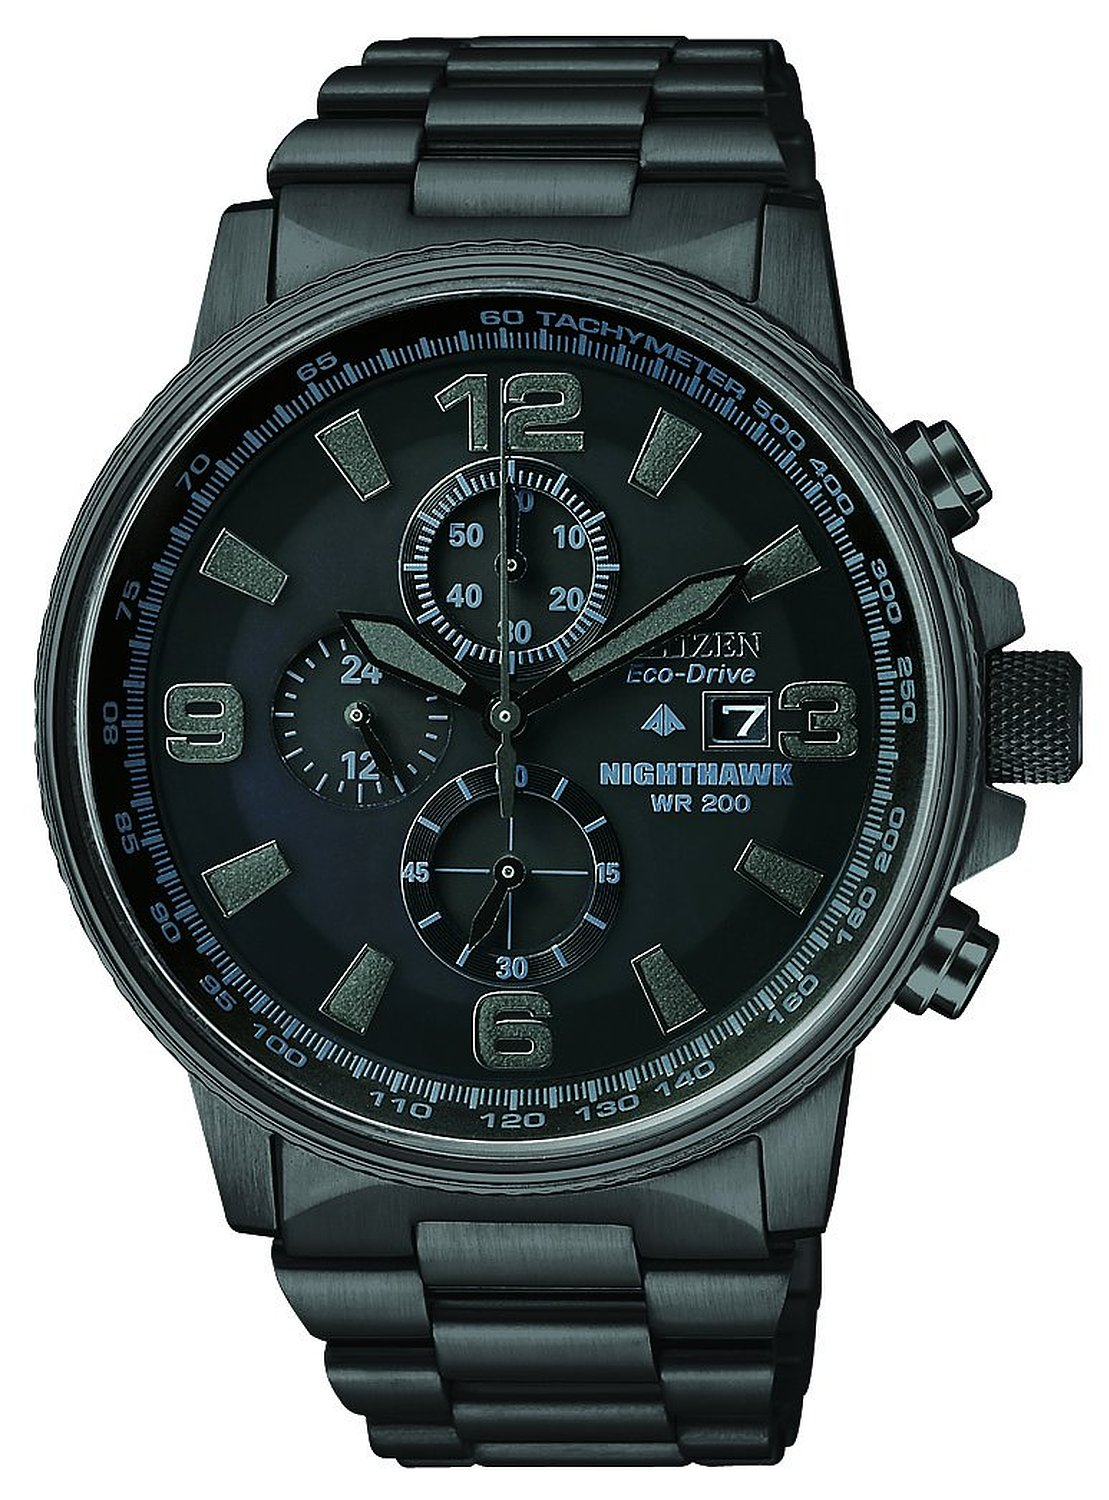 5 most popular best selling citizen watches for men the watch blog citizen men s ca0295 58e eco drive nighthawk watch